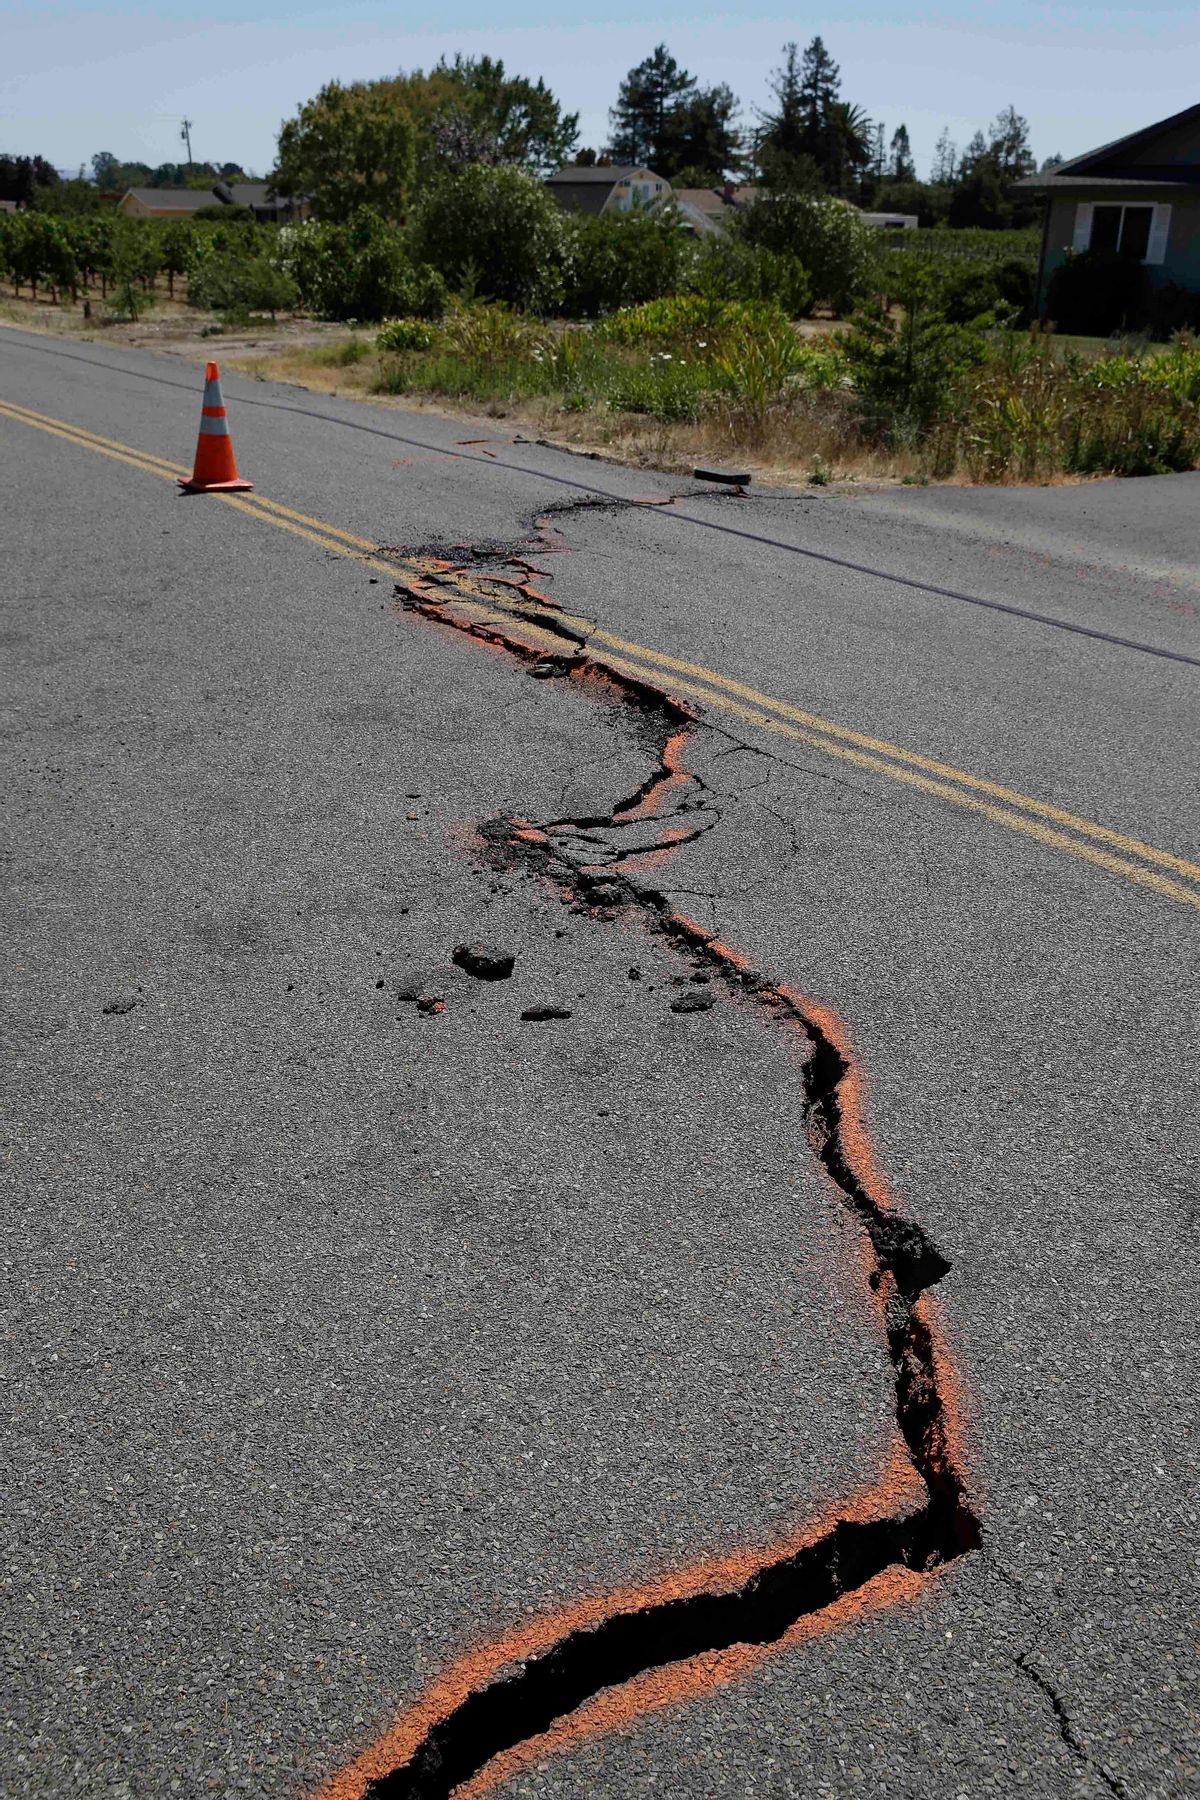 FILE - In this Aug. 24, 2014 file photo, a cracked section of roadway is shown in the Carneros district of Napa, Calif., following an earthquake. Emerging data on last month's Northern California earthquake is explaining why the city of Napa suffered so much of the damage.  (AP Photo/Eric Risberg, File) (AP)